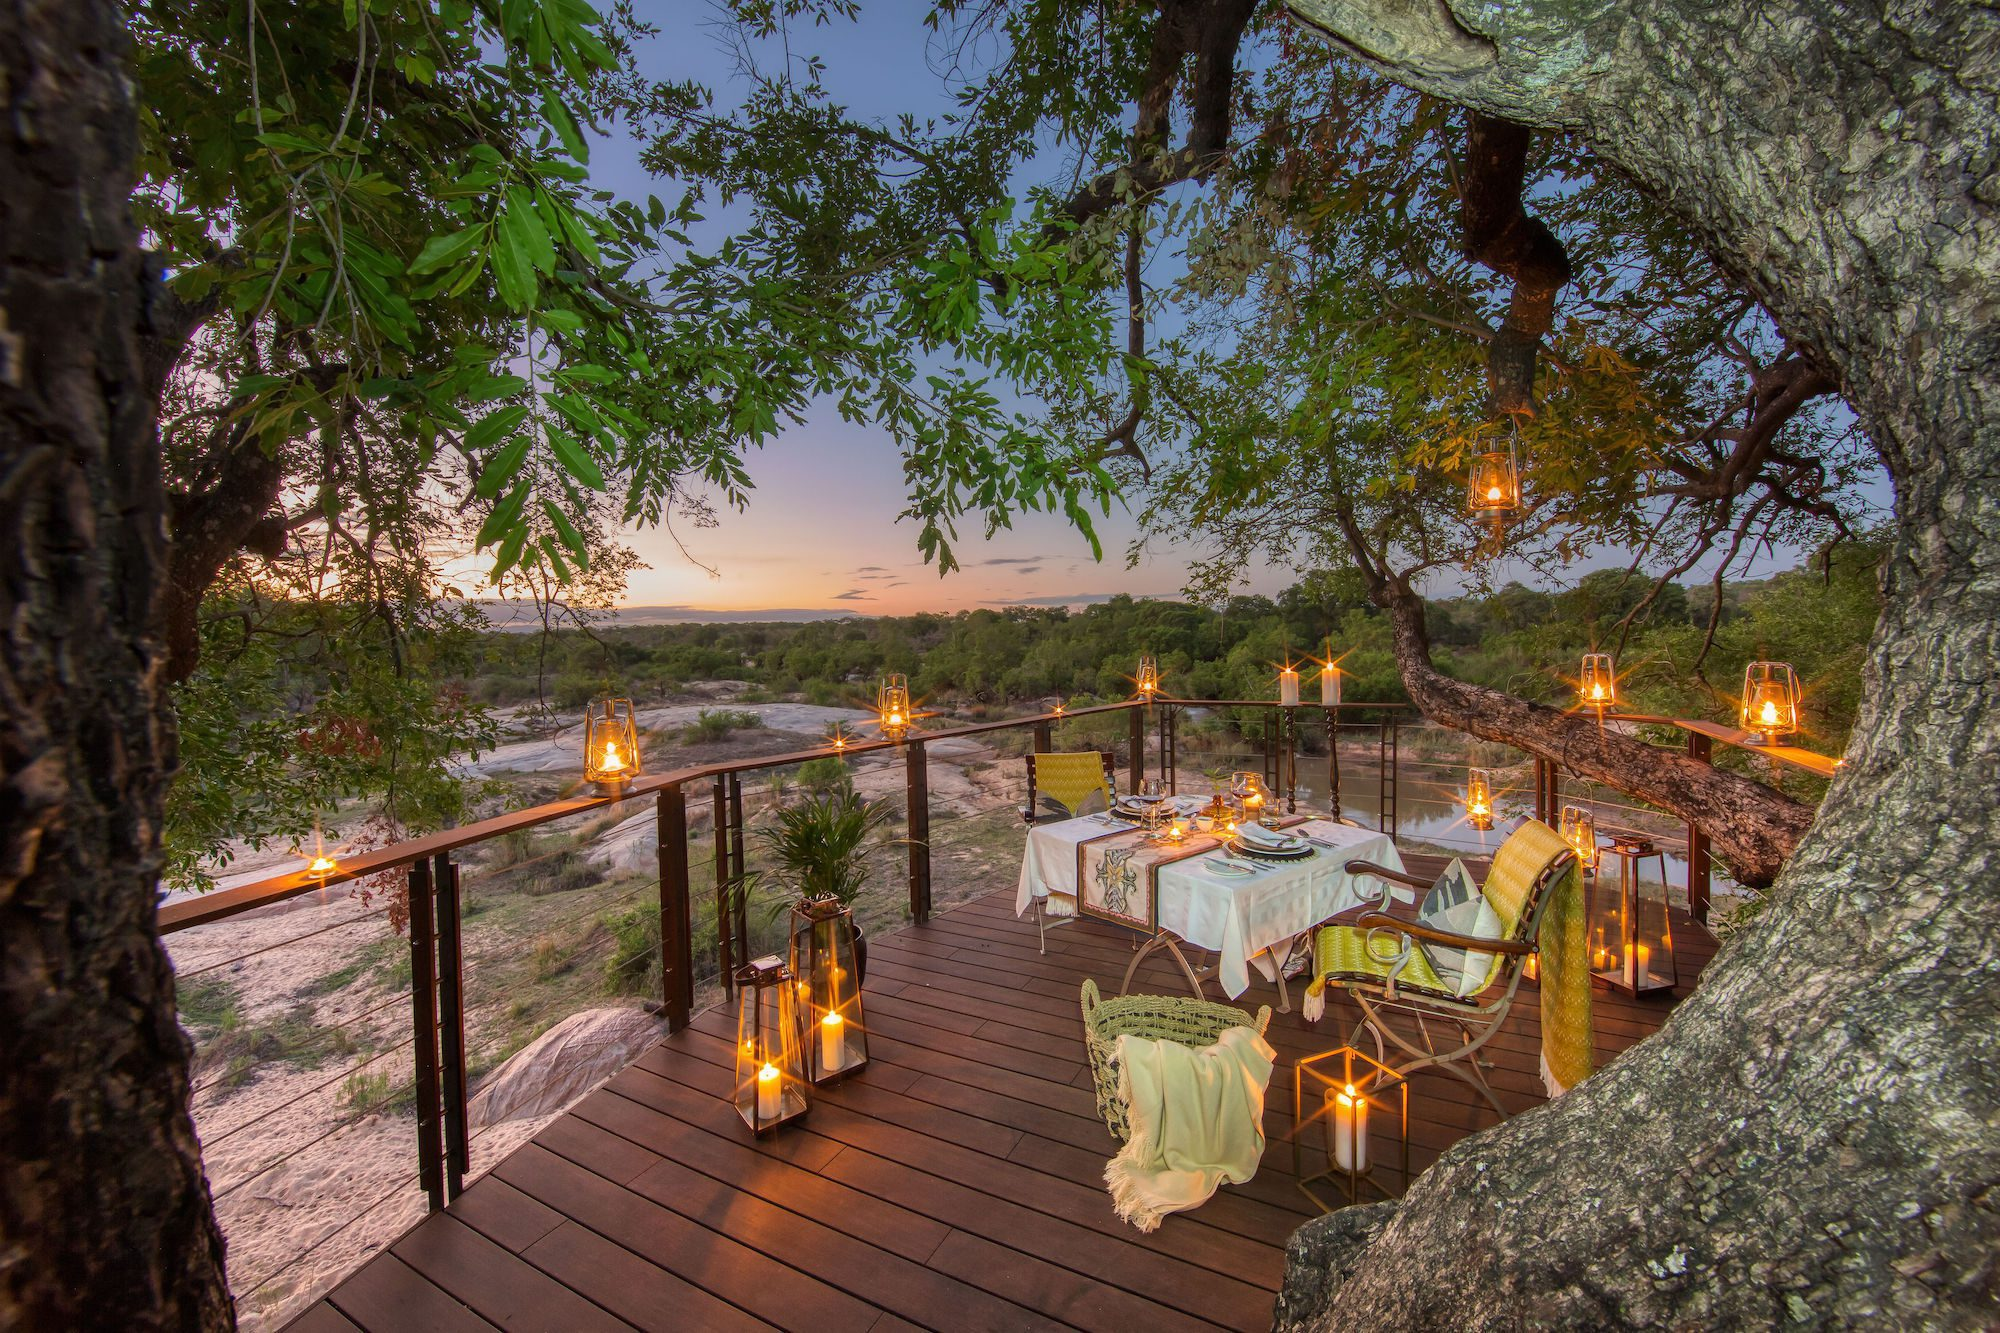 lookout deck with a table and chairs beneath lanterns on this Africa honeymoon safari